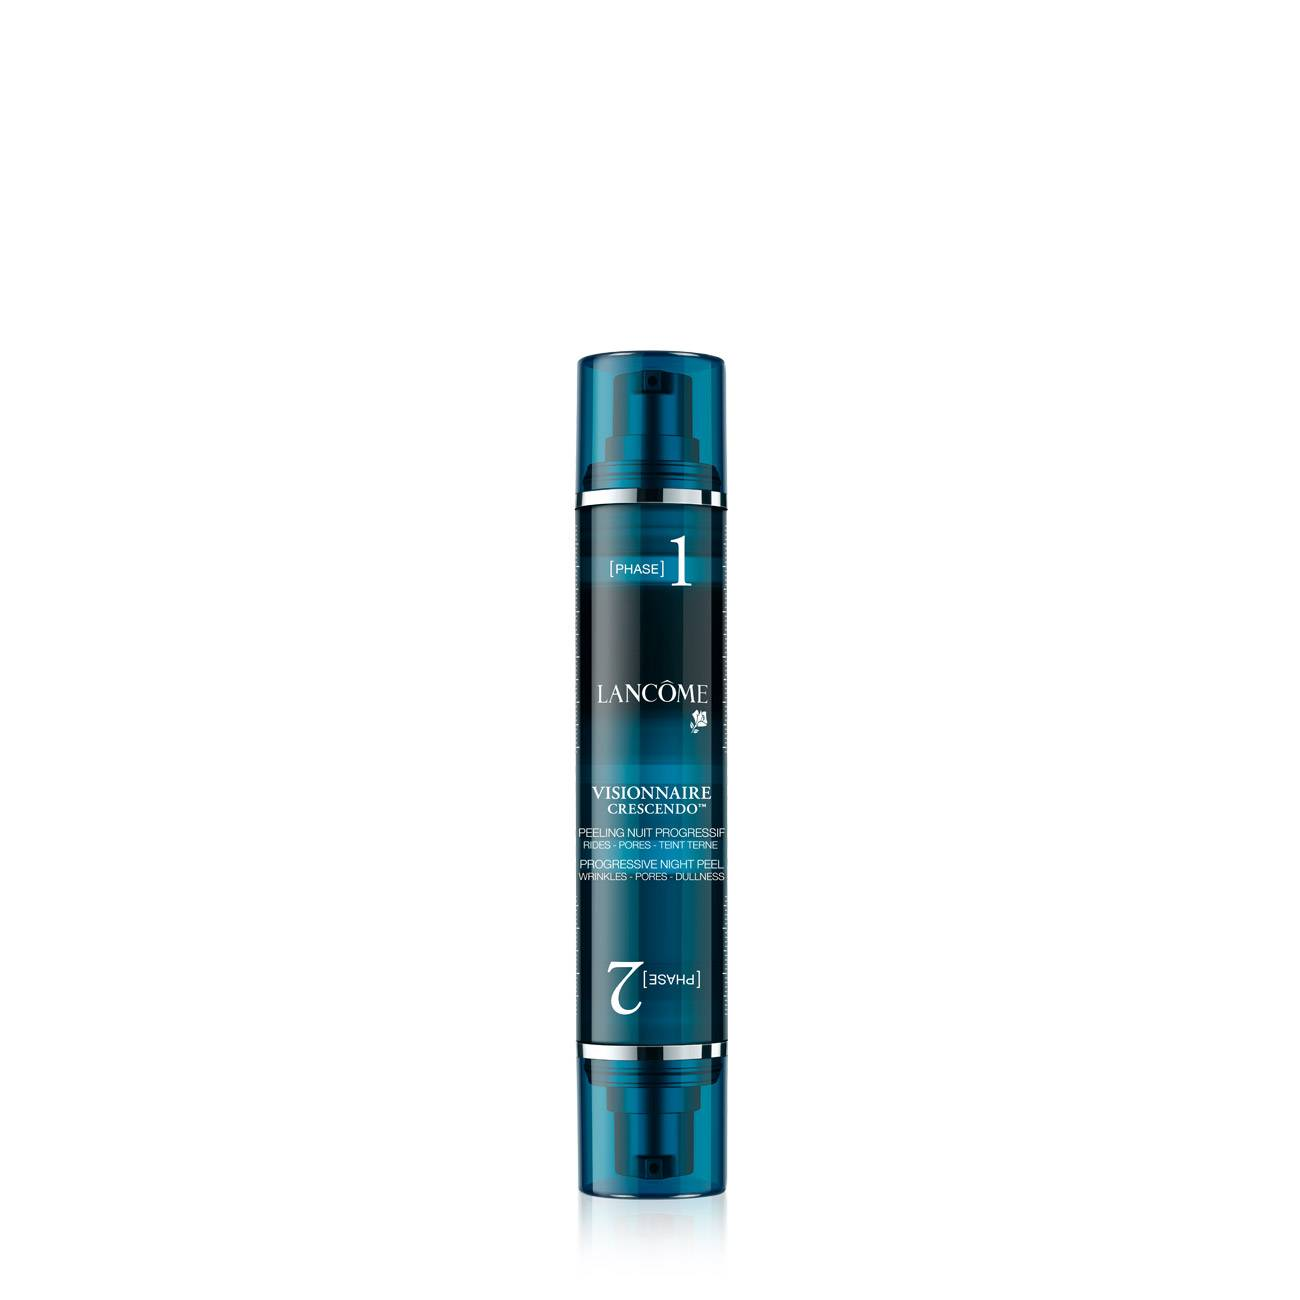 Visionnaire Liquid Peel Crescendo 30 Ml Lancôme imagine 2021 bestvalue.eu